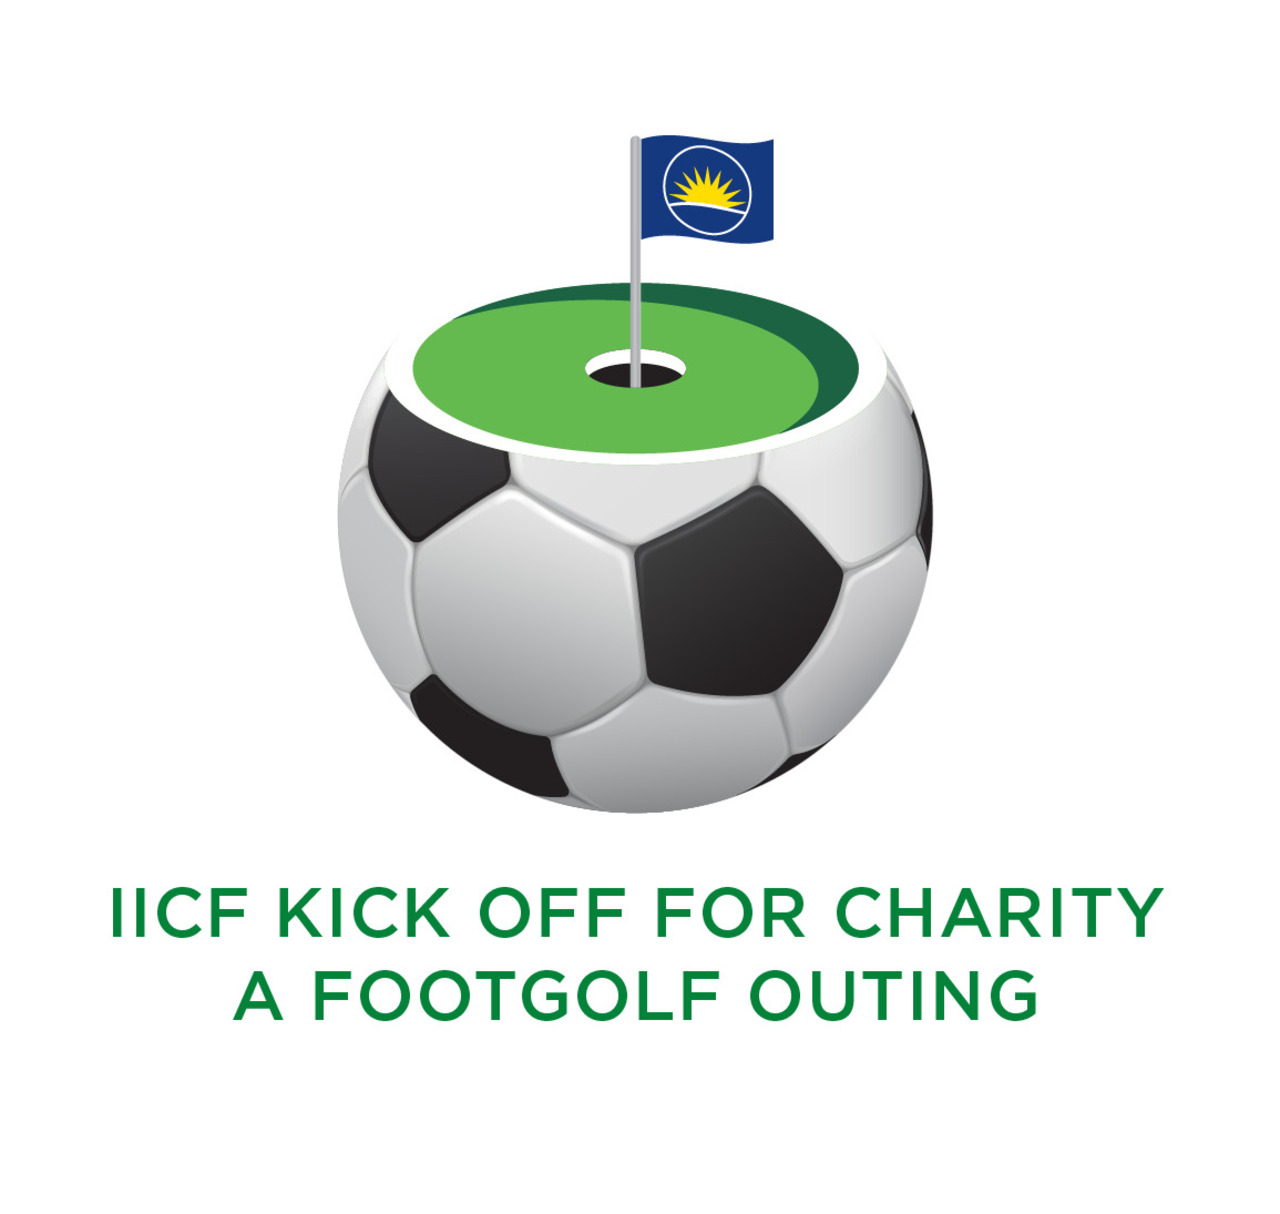 IICF Kick Off for Charity-A FootGolf Outing